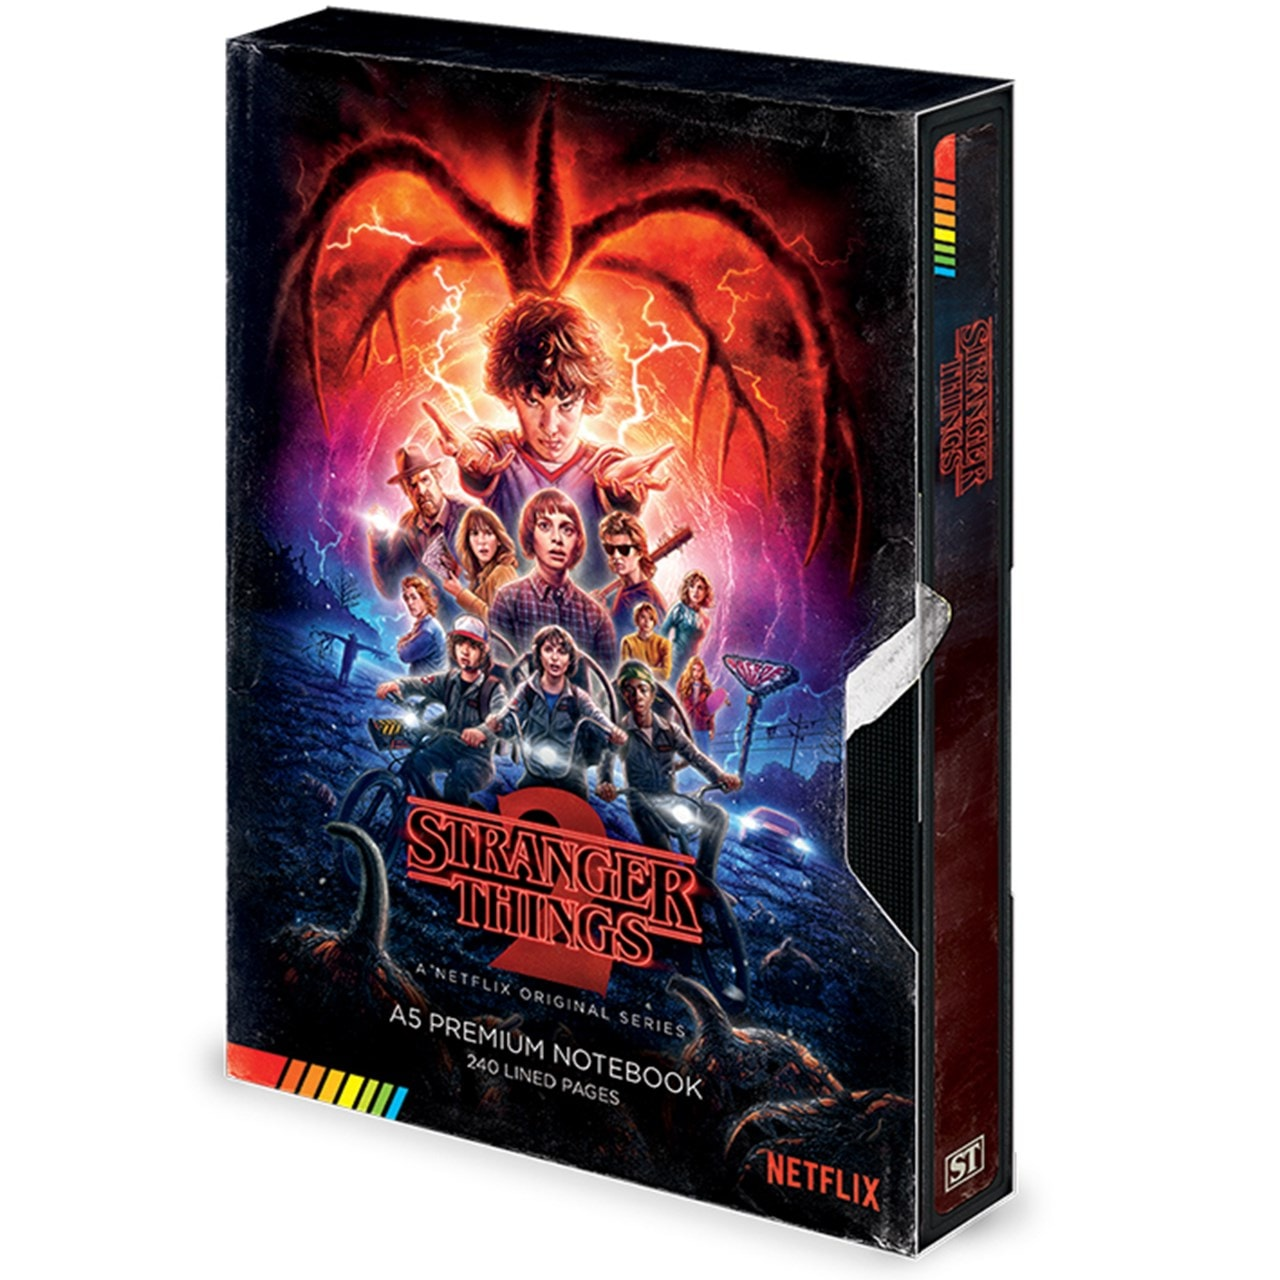 Stranger Things (S2) VHS A5 Premium Notebook - 1